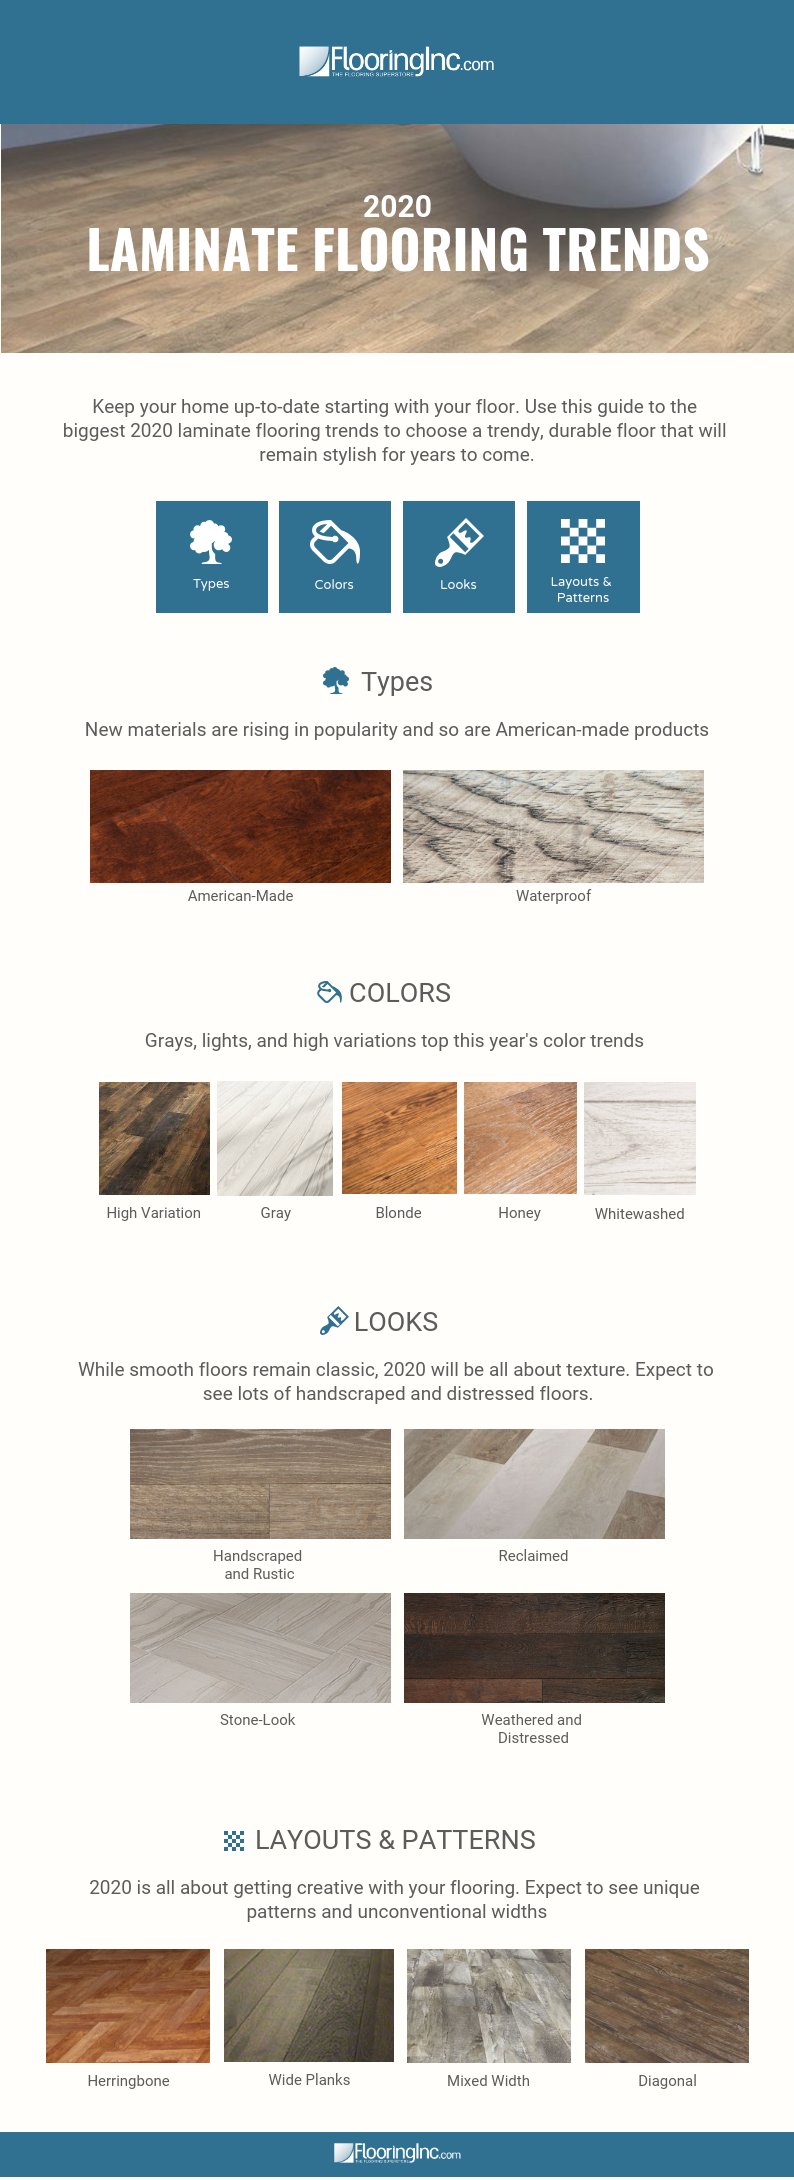 FlooringInc 2020 laminate flooring trends